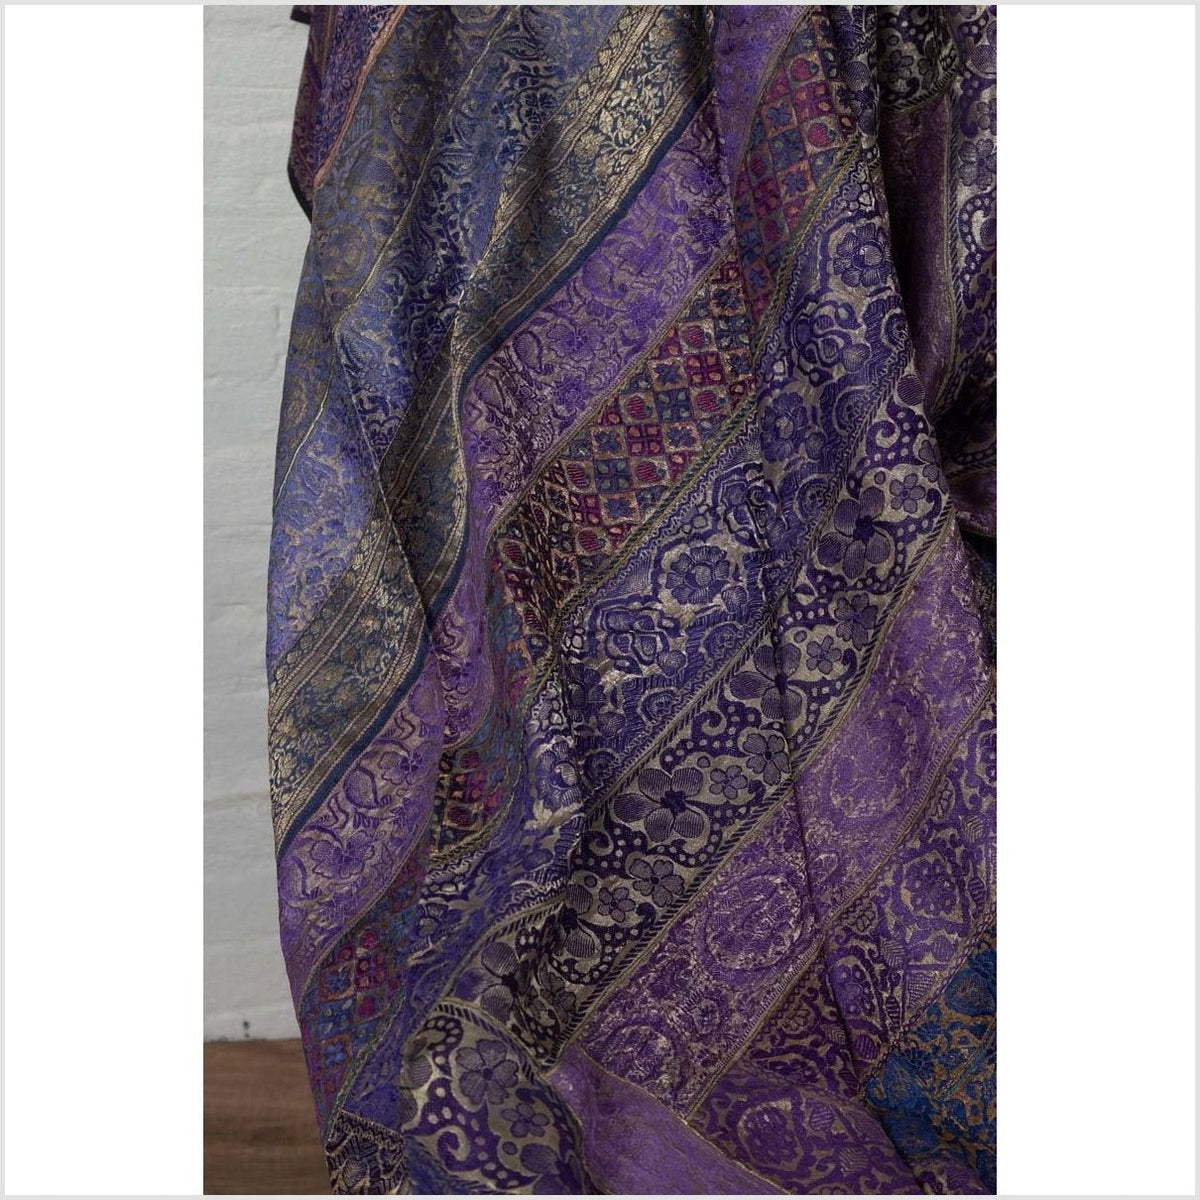 Vintage Indian Purple Silk Embroidered Fabric with Purple, Silver and Gold Tones